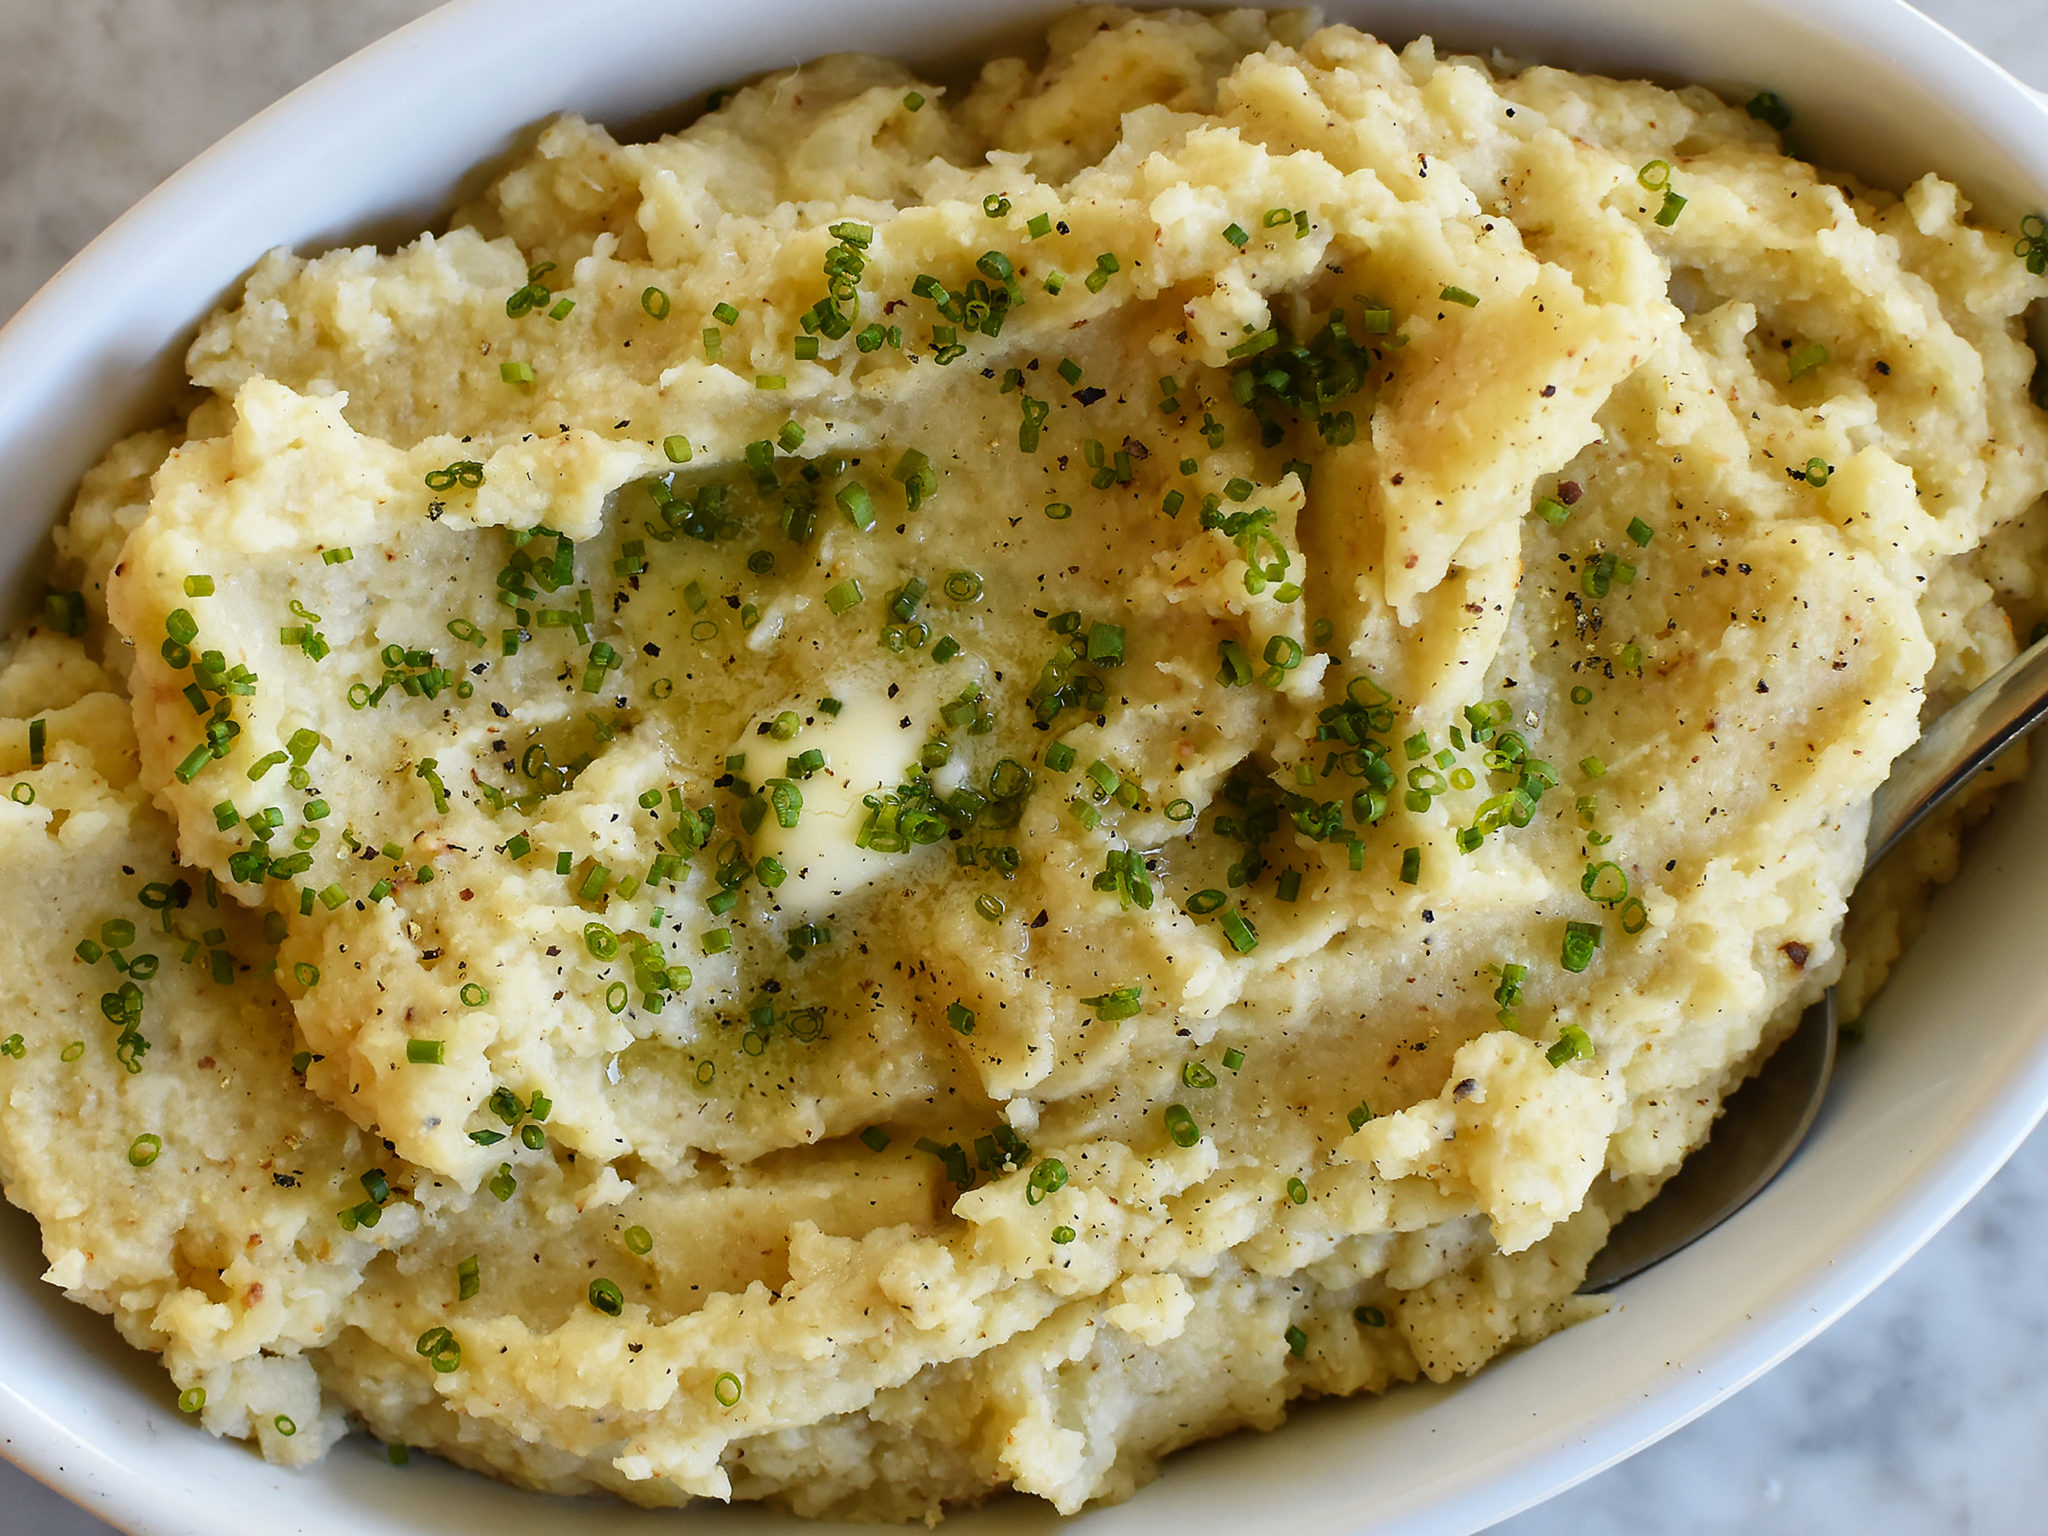 https://www.surgicalgroupnt.com/wp-content/uploads/2018/11/1810w-cauliflower-mashed-potatoes-2.jpg